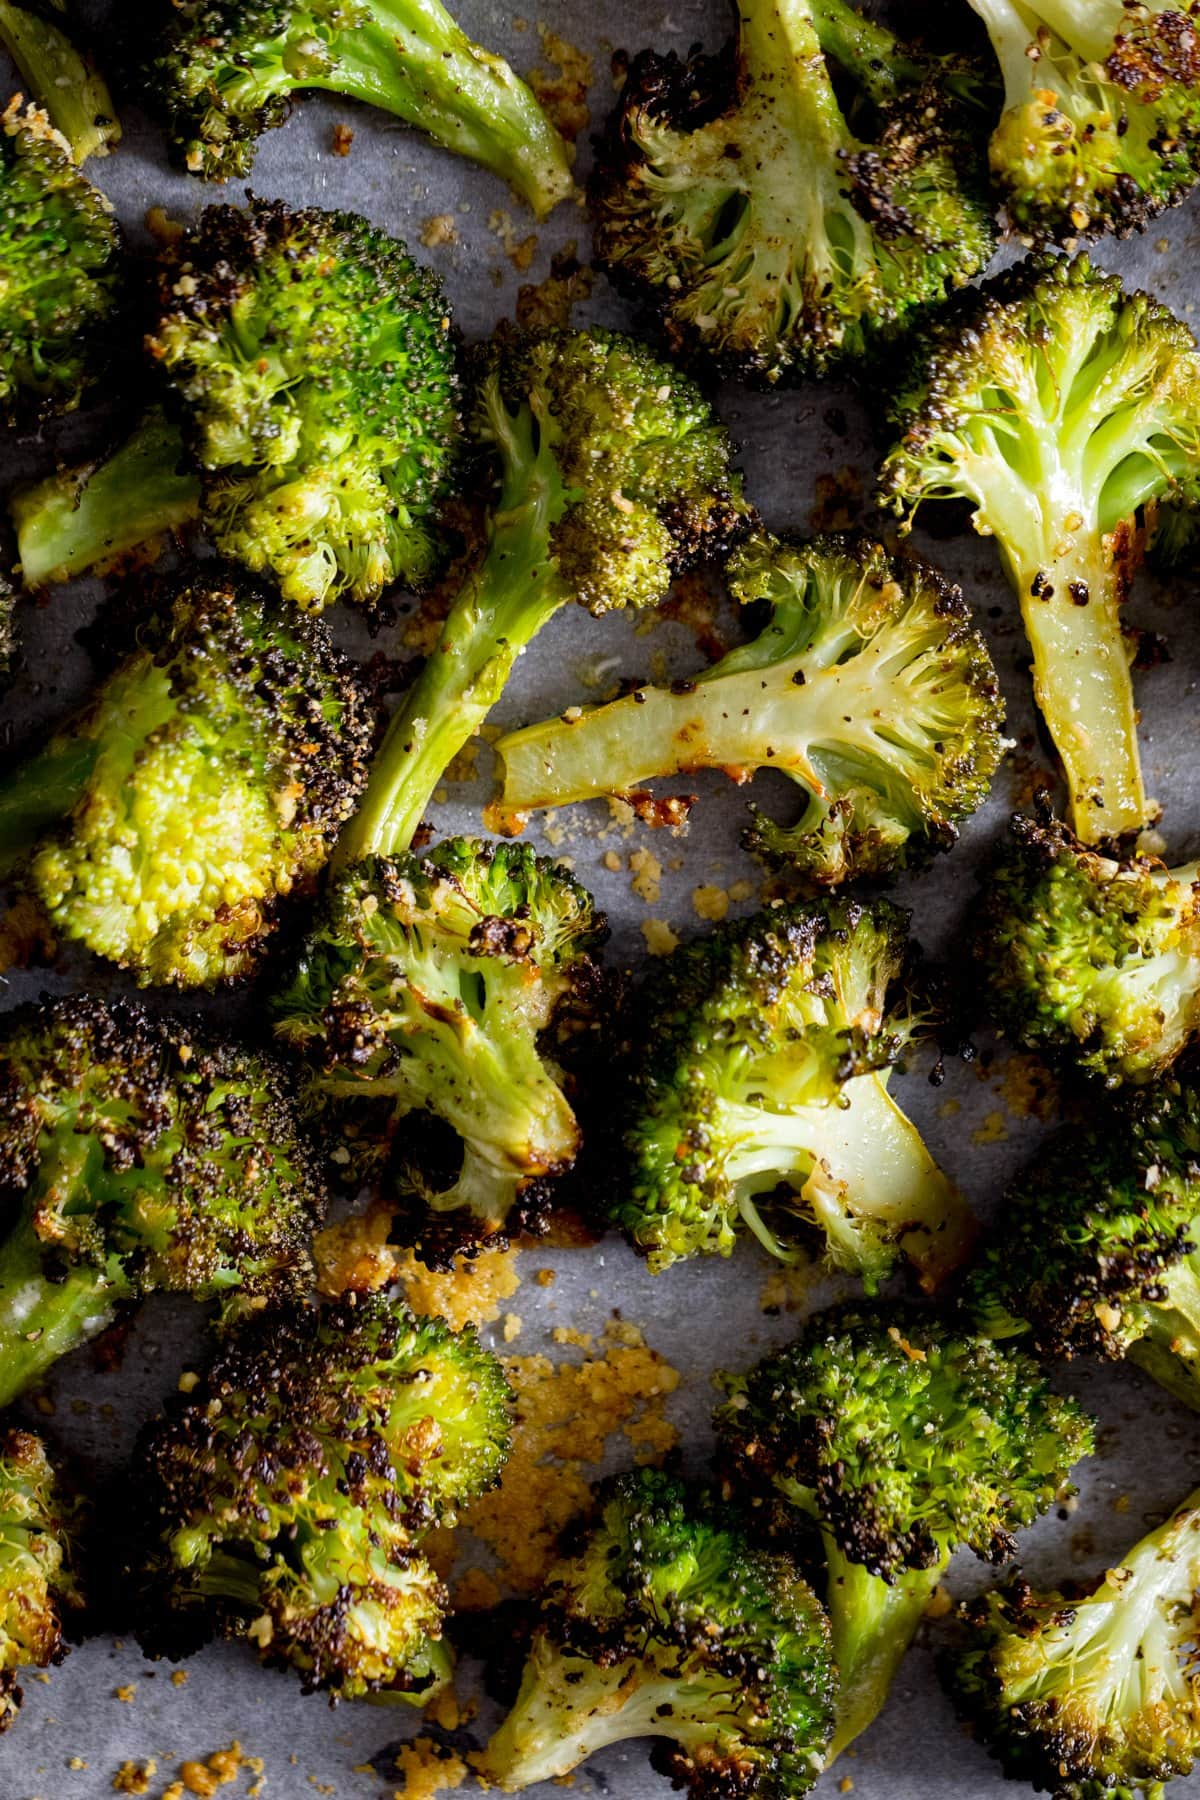 A close up of roasted broccoli with garlic on a white tray